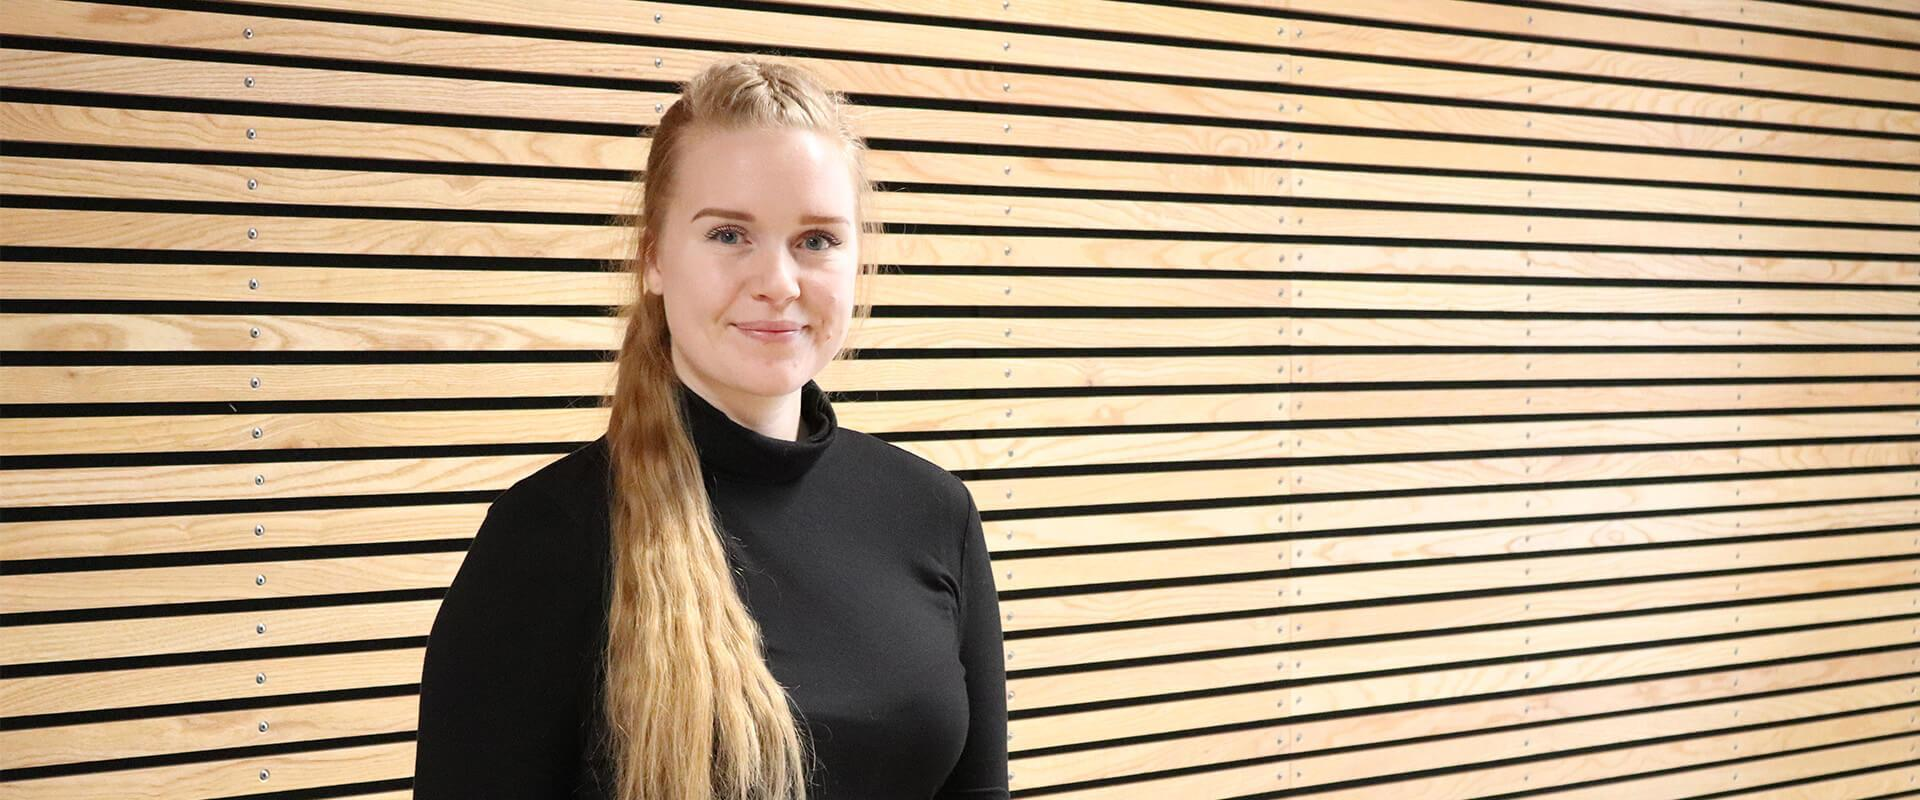 Q&A by the Coffee Machine: Sine Søe Poulsen, Accounting Apprentice